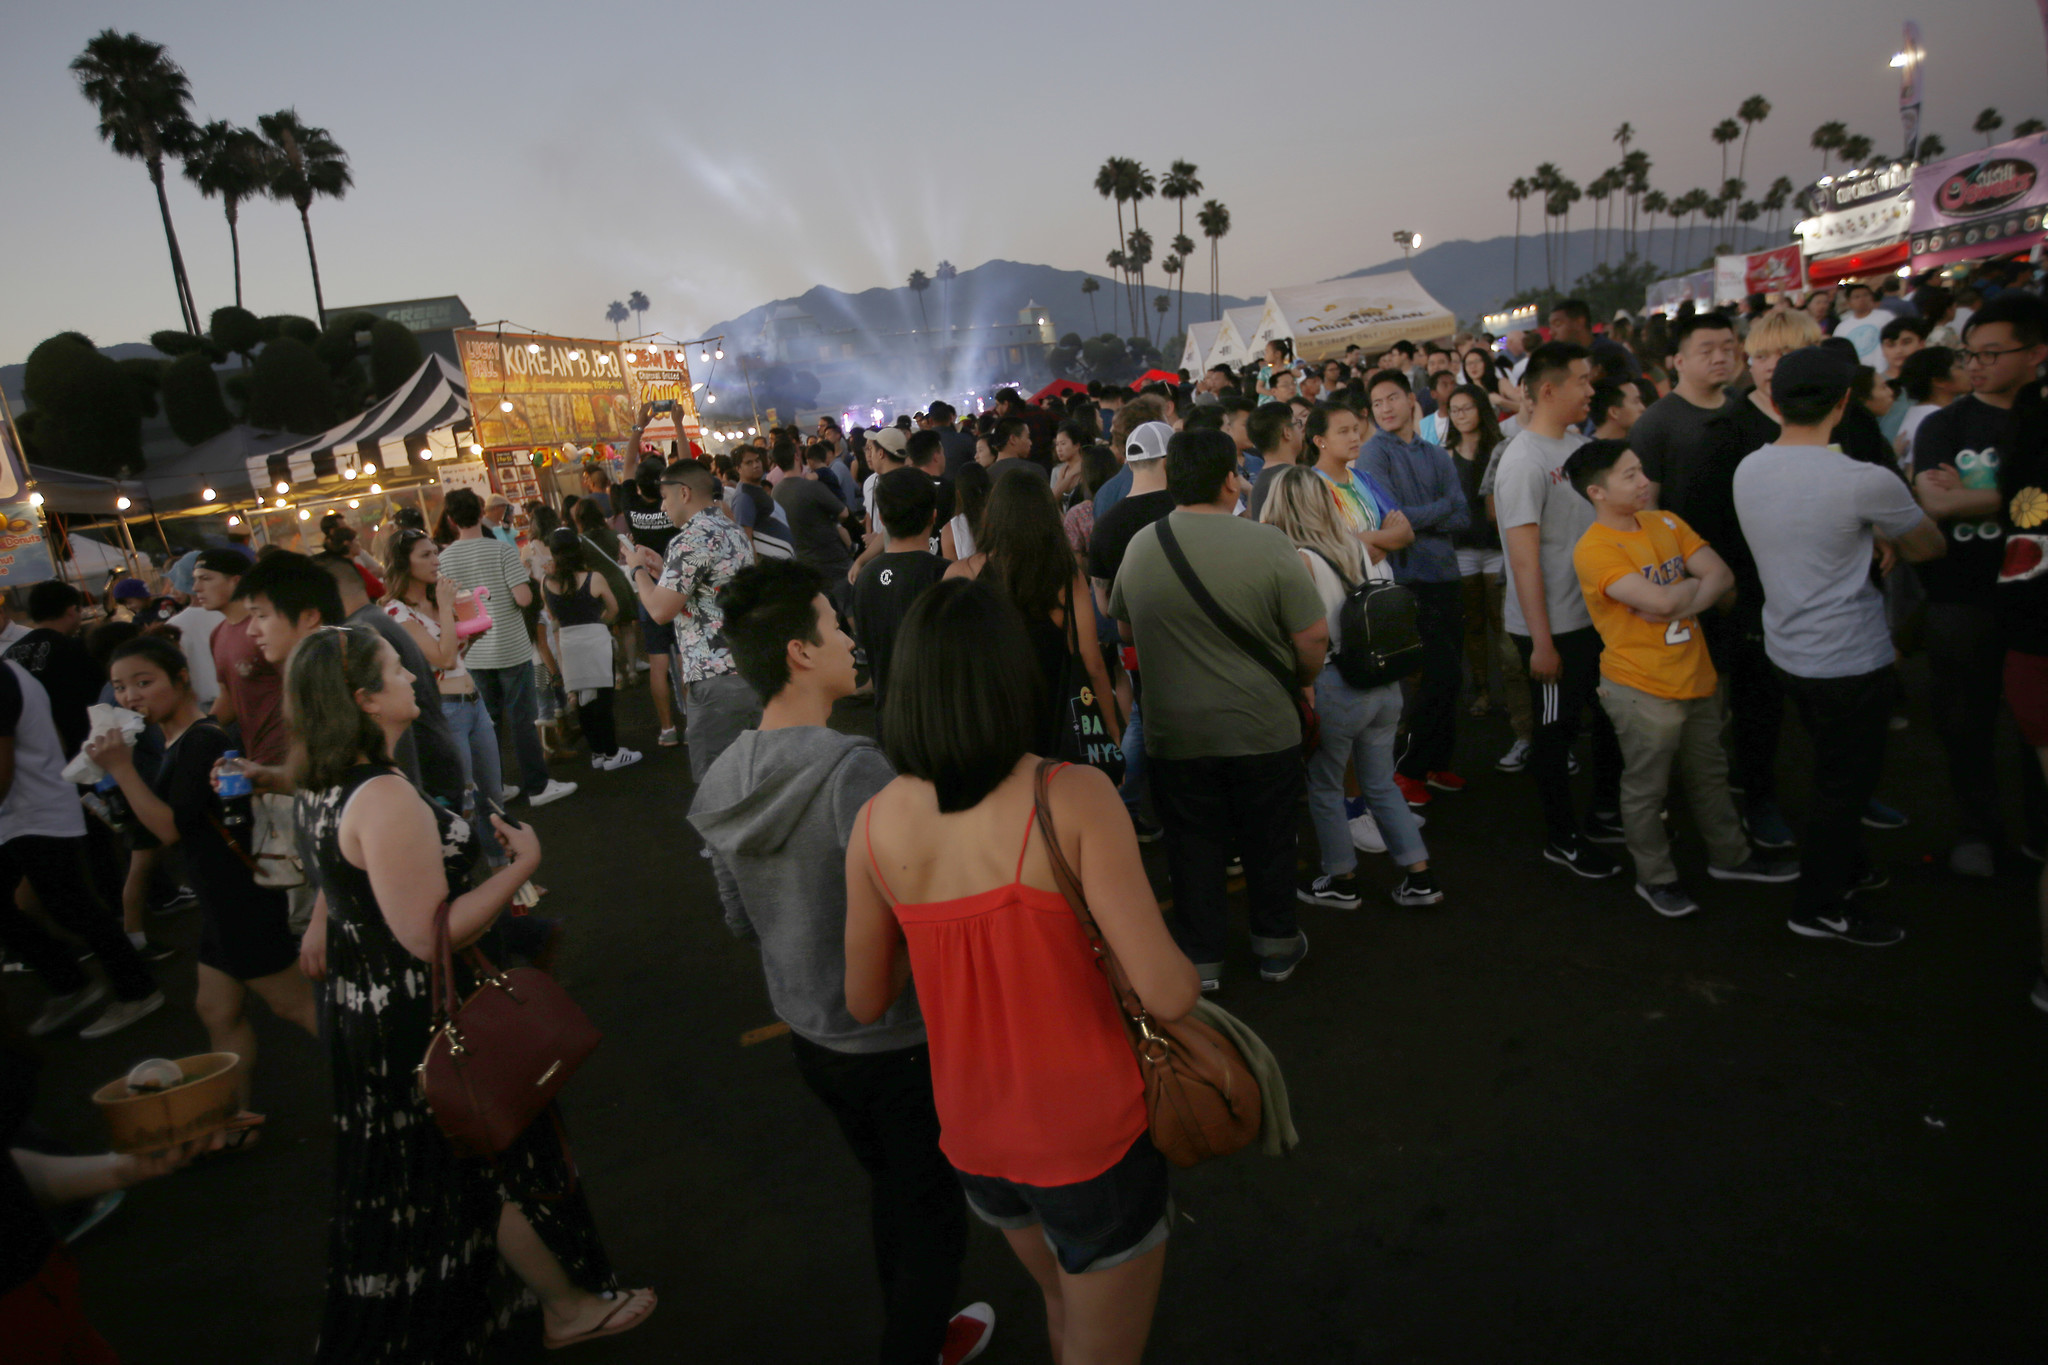 A large crowd attends the 626 Night Market in Arcadia during its opening weekend in 2017.